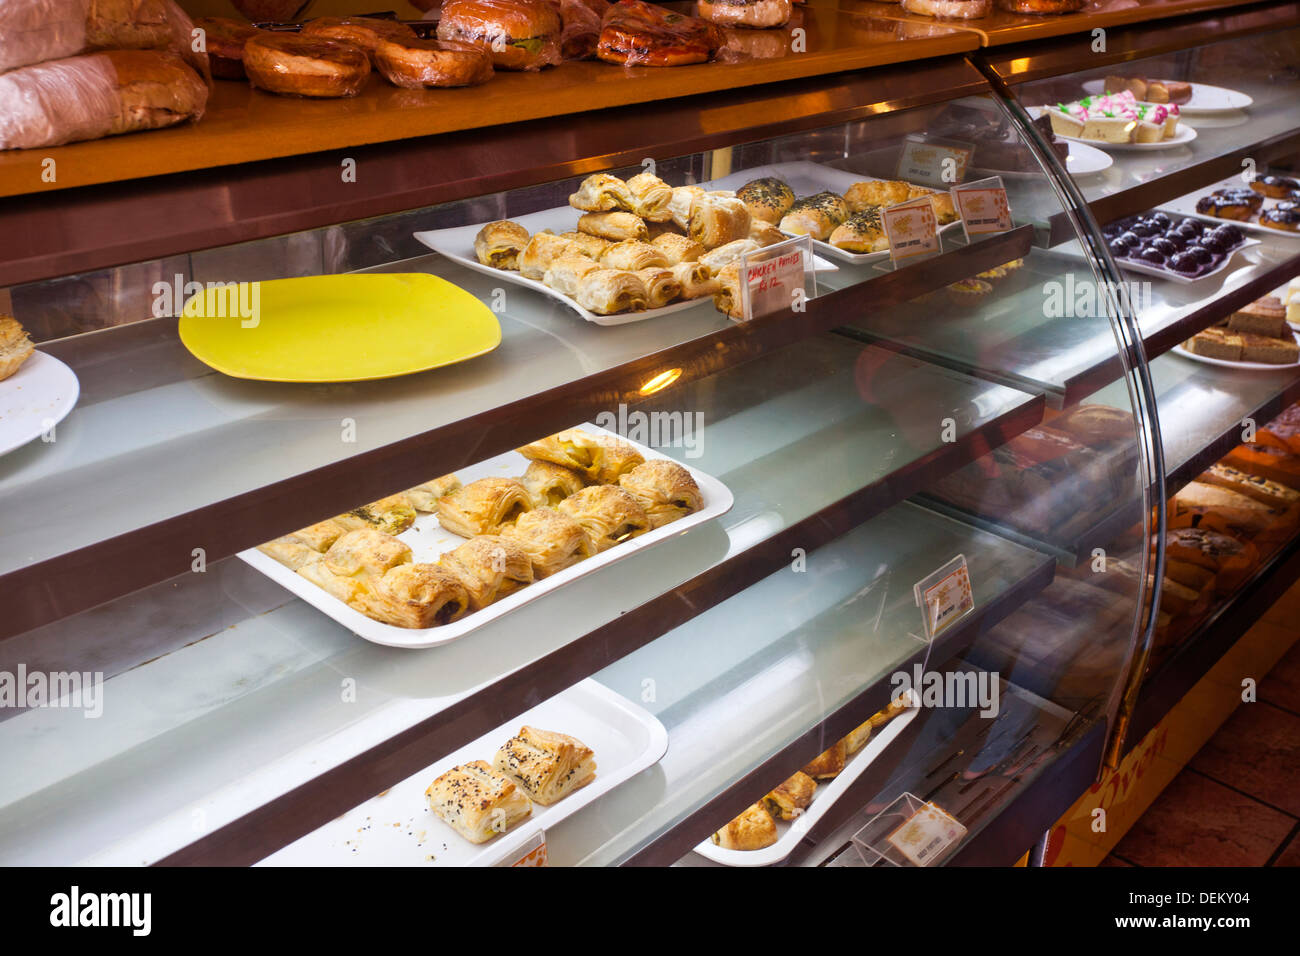 Bakery Display Cabinet Close Up Of Bakery Products In Display Cabinet Golden Oven Cake